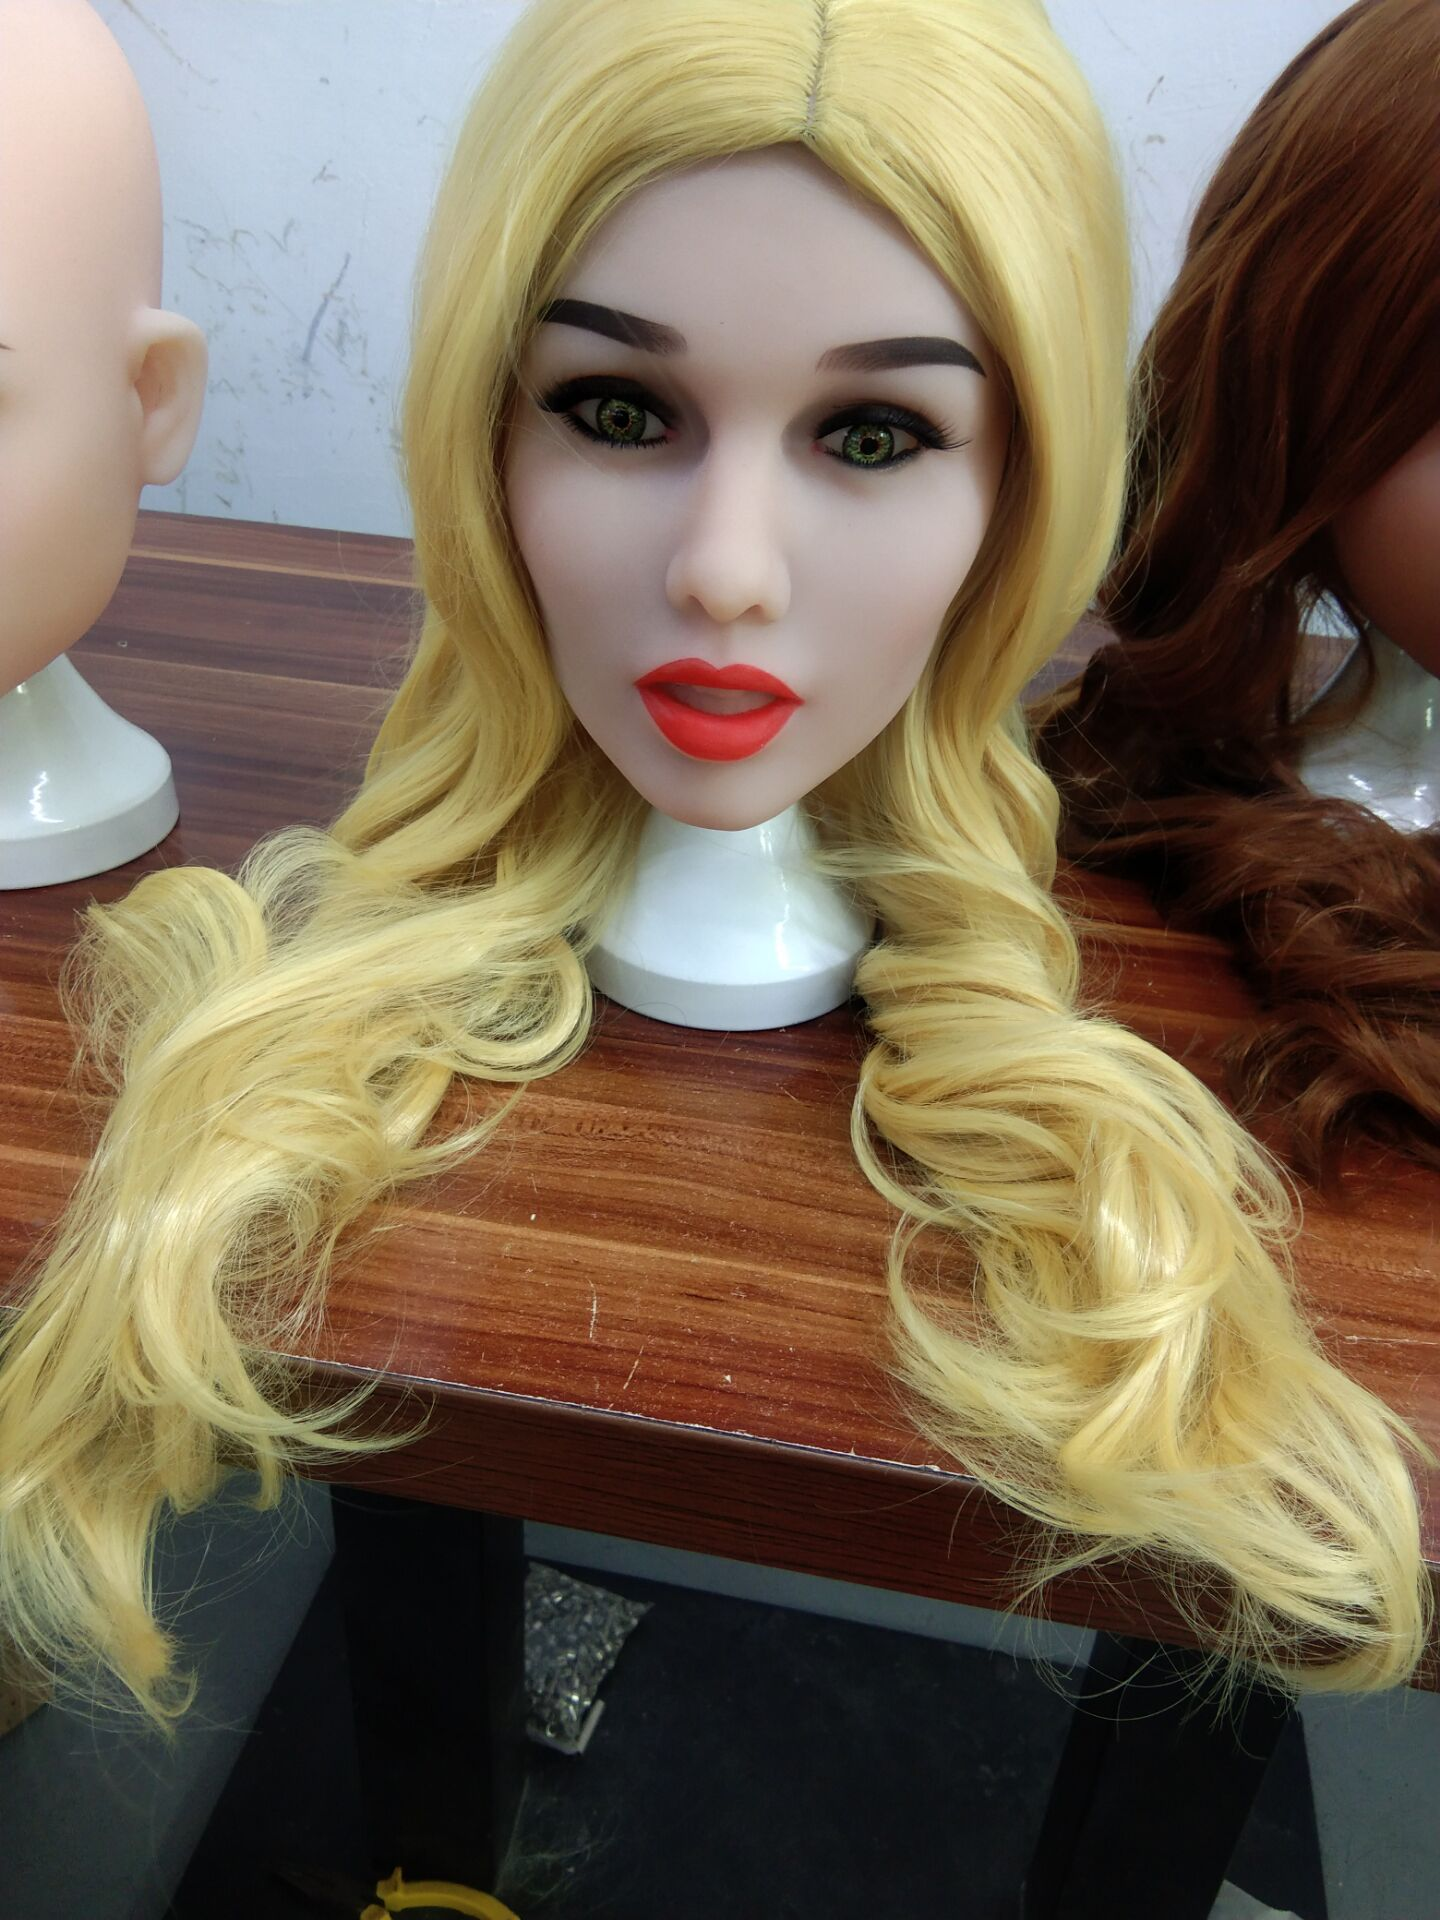 Real <font><b>sex</b></font> <font><b>dolls</b></font> head Long blond pretty girl for 135cm to <font><b>176cm</b></font> big breasts/flat chest/small breasrs pregnant fat ass <font><b>doll</b></font> image